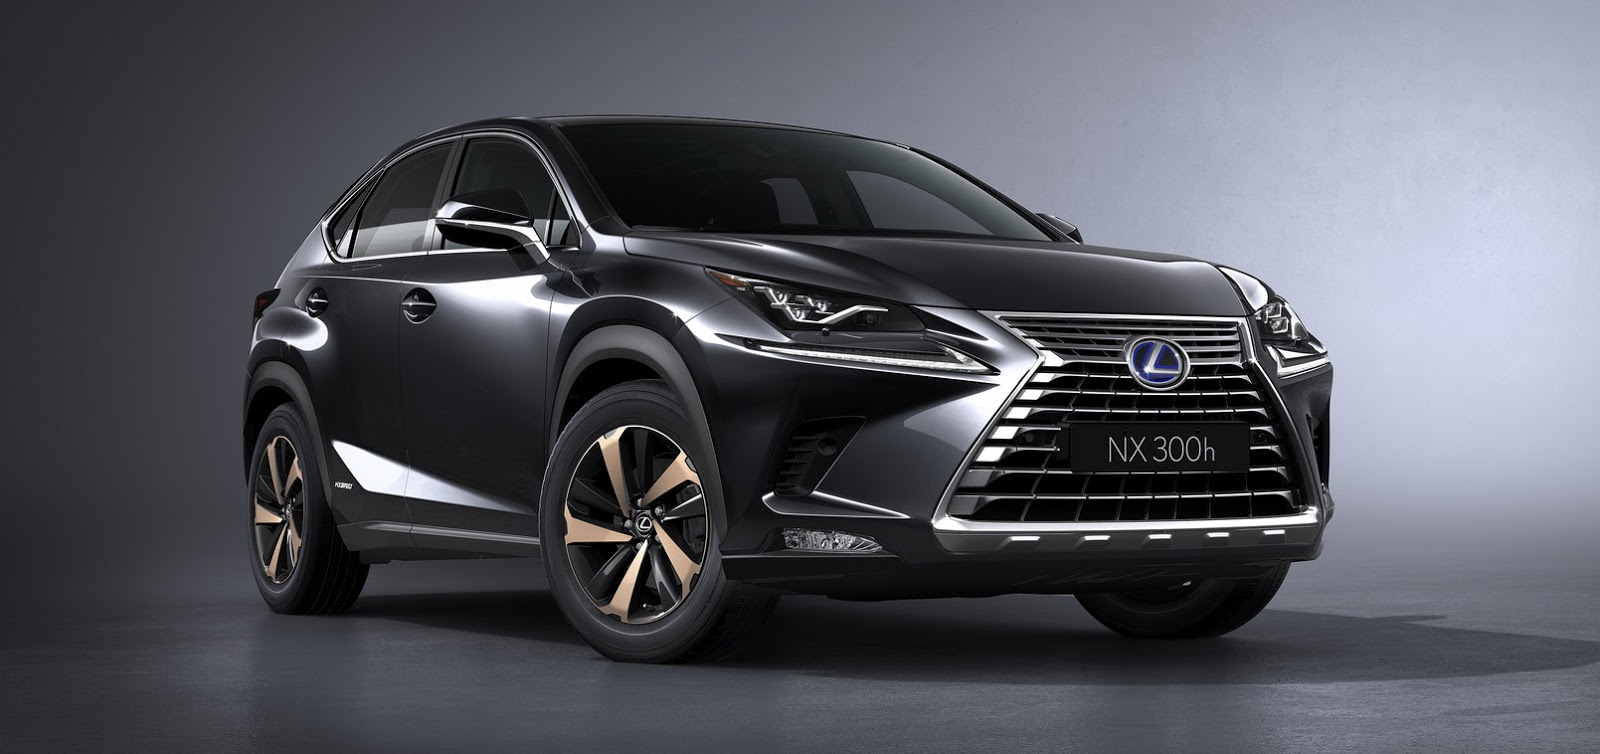 2018 lexus nx 300h facelift enjoys price cut despite new tech carscoops. Black Bedroom Furniture Sets. Home Design Ideas